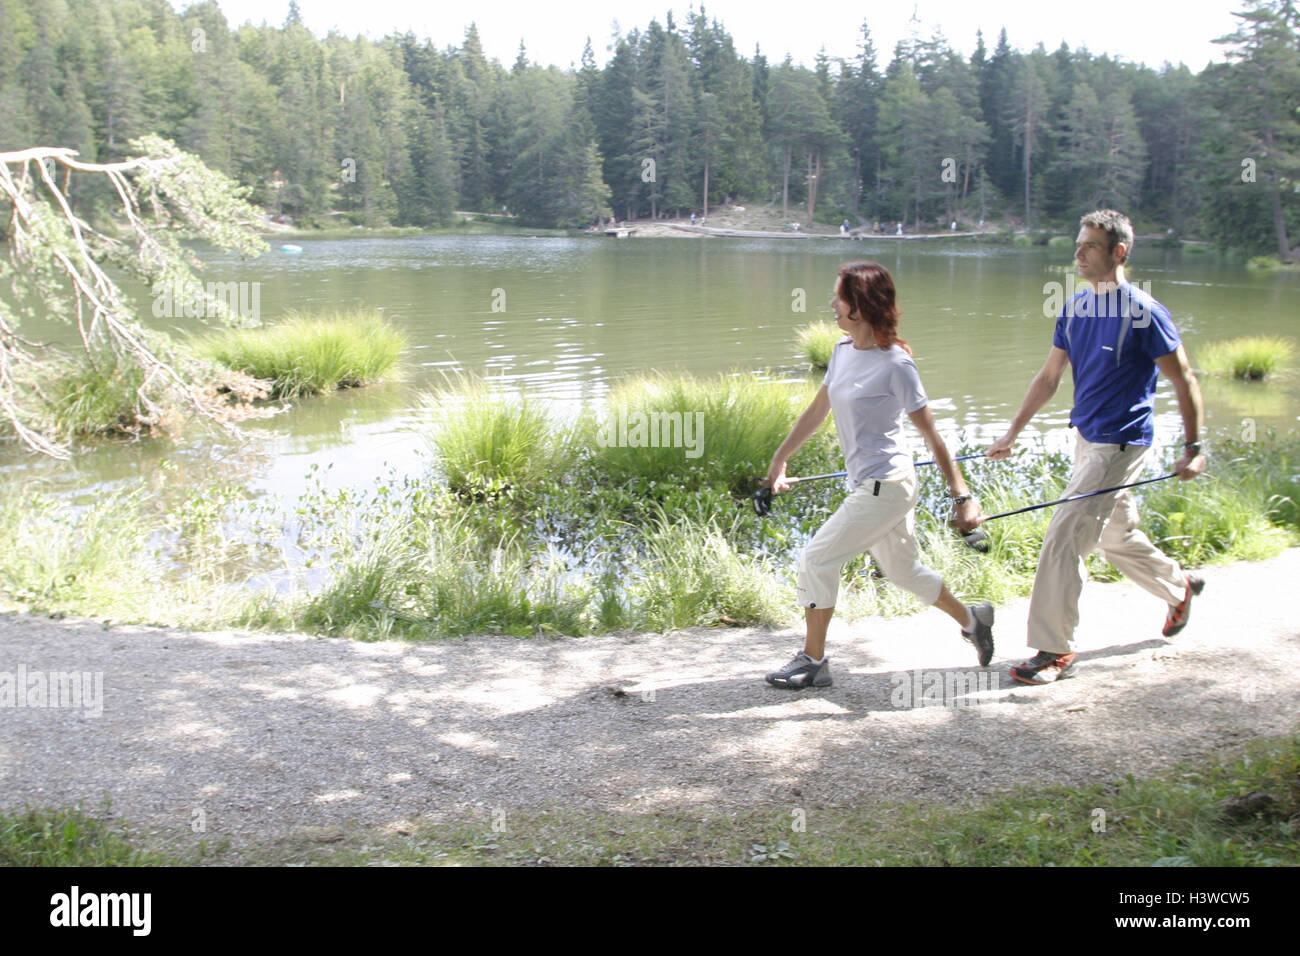 Forest way, lakeside, couple, sportily, jog, hold floors, together, hold on sportswoman, sportsman, sport, fitness, - Stock Image